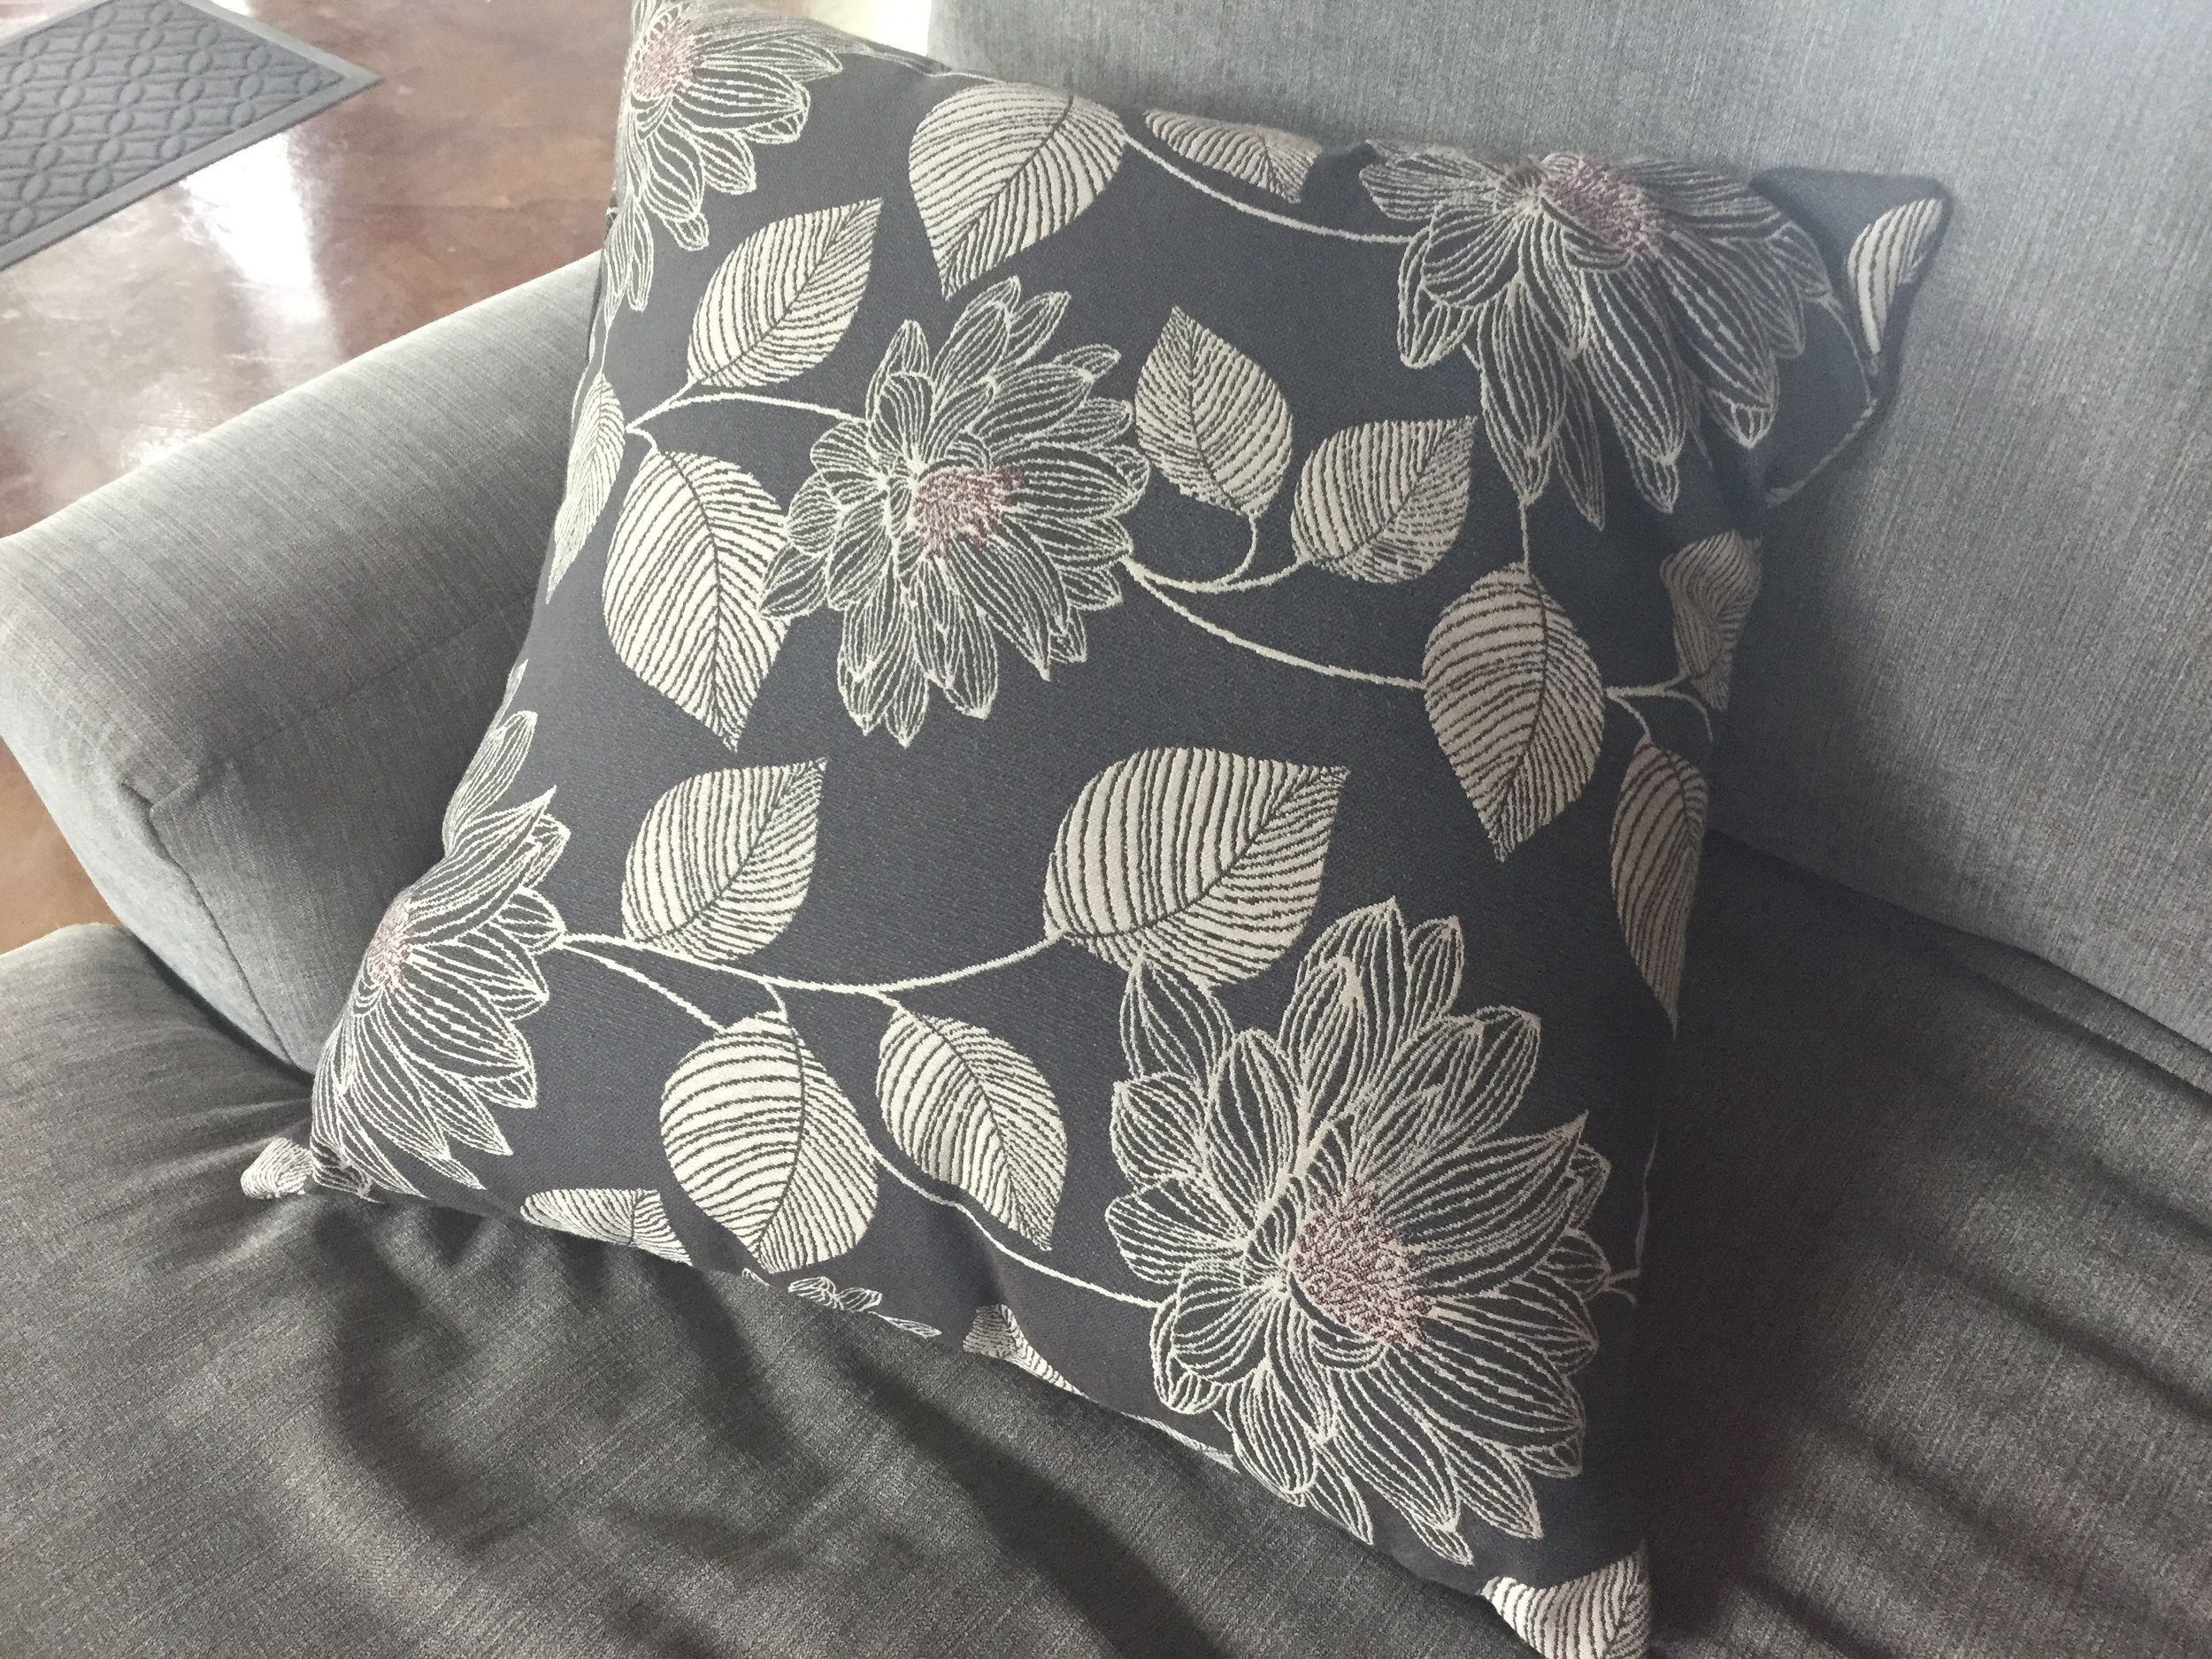 Here is my original pillow that I will be placing into the cover!